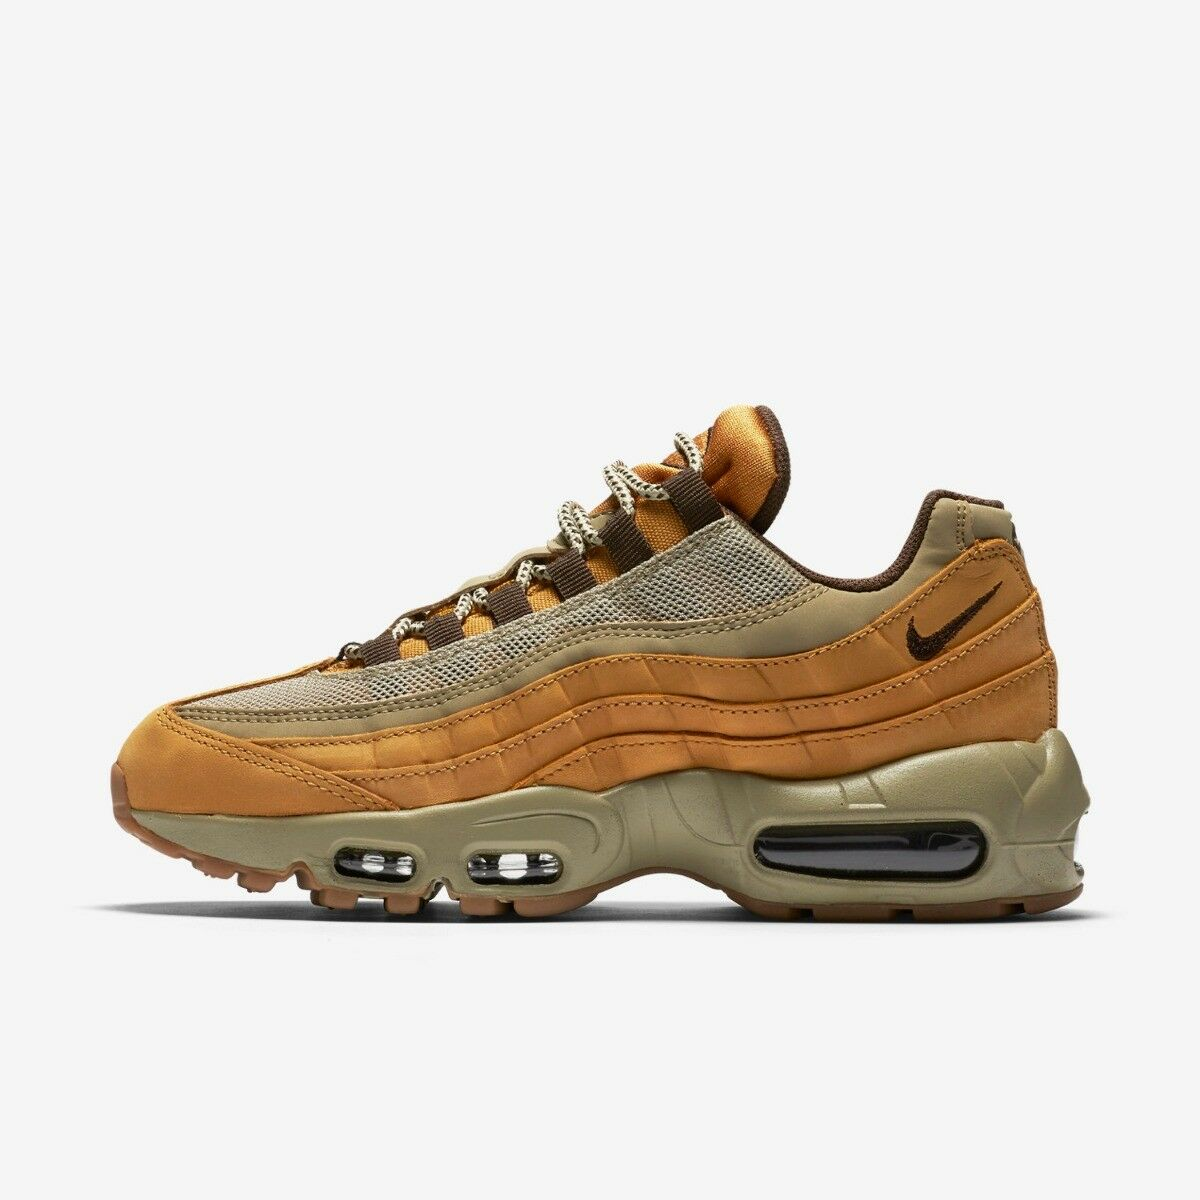 Nike pour femmes Air Max 95 hiver GB Taille 4 - 6 Baskets Chaussures course